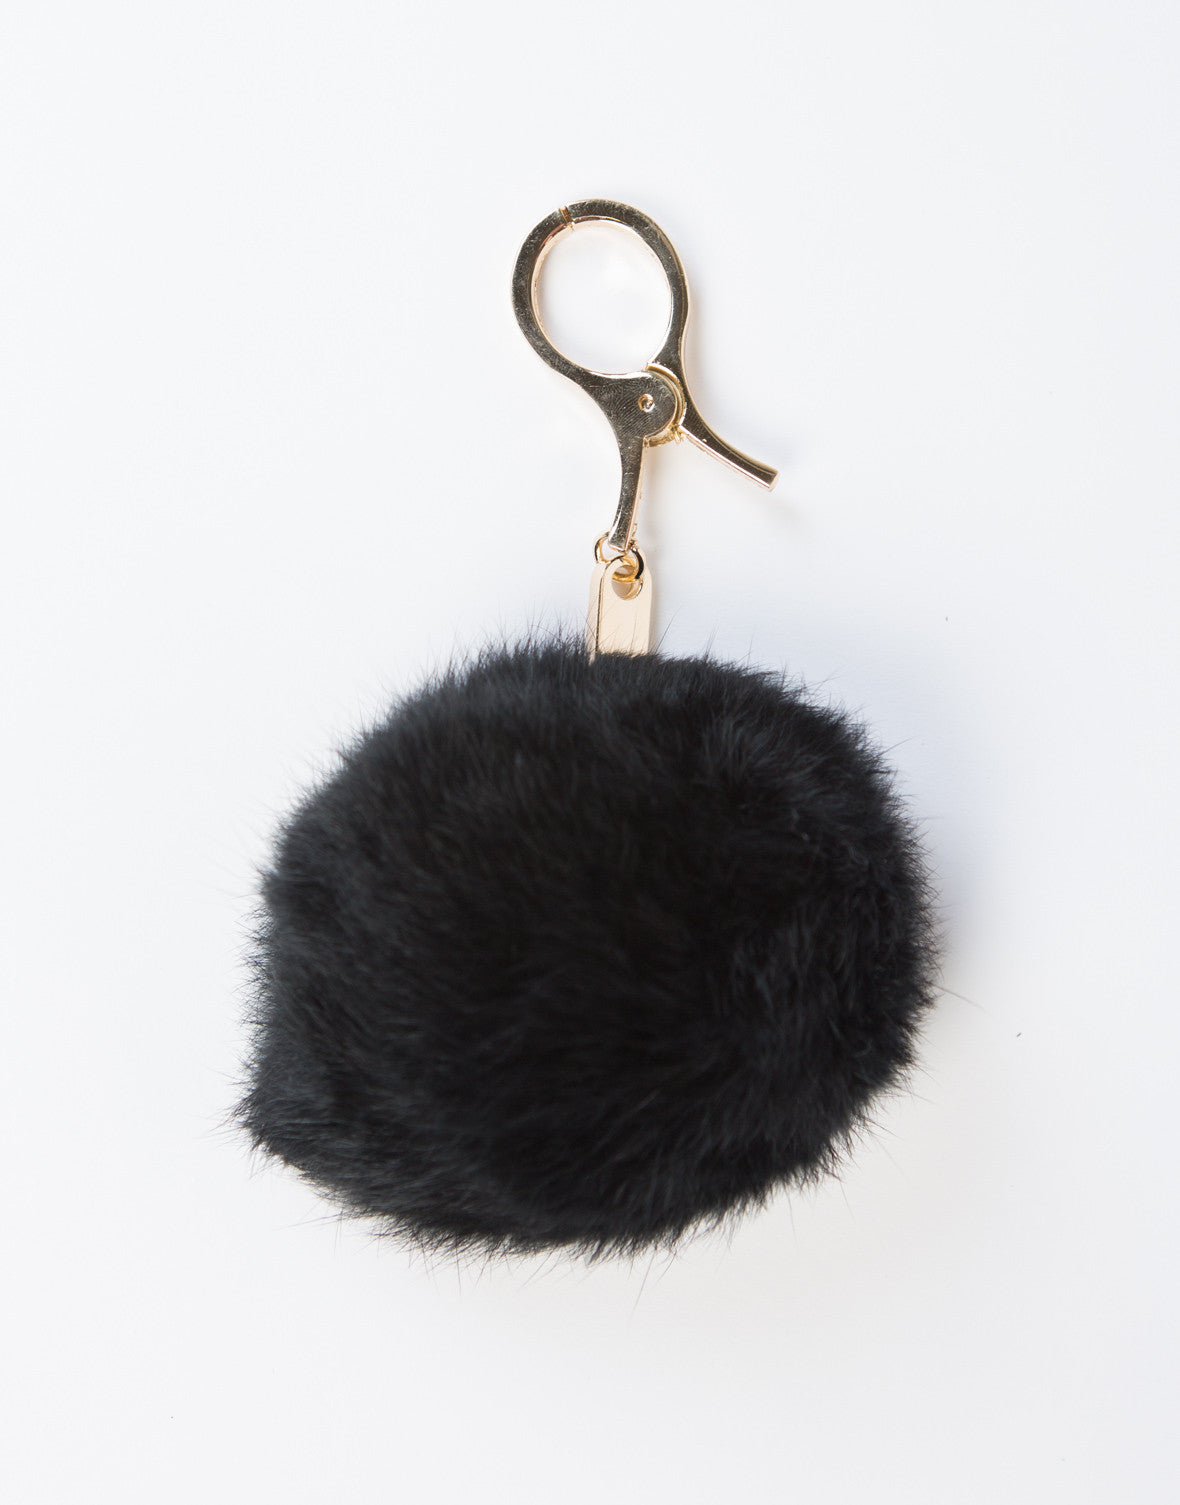 What the Fur Keychain